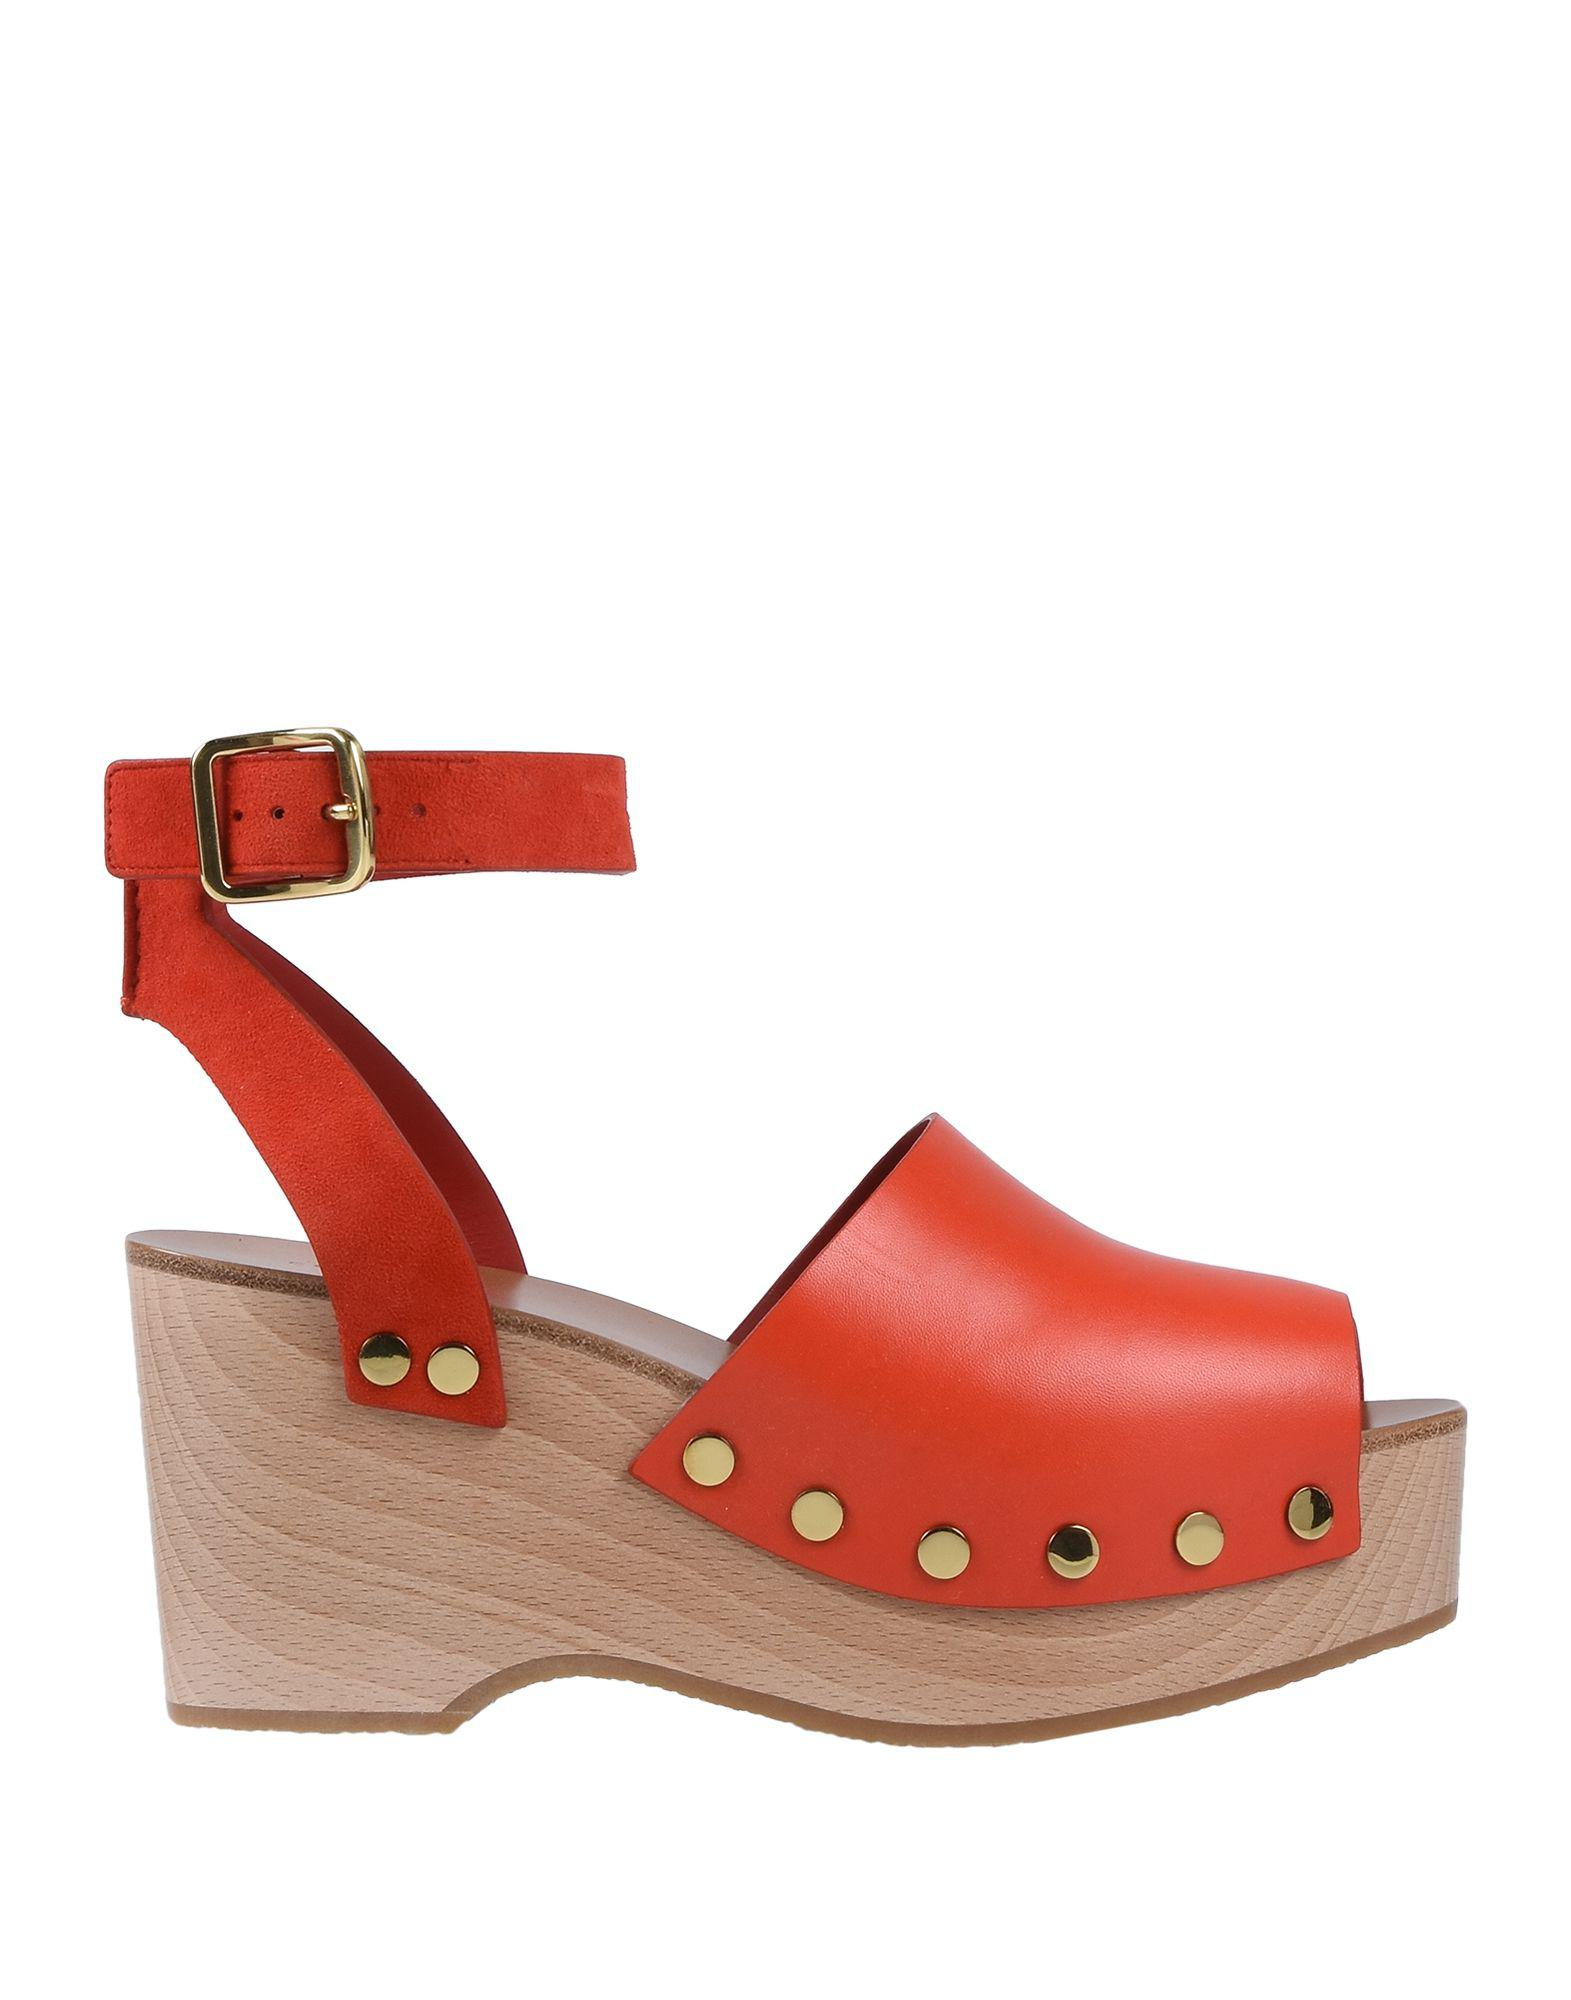 ee338c251a1 Lyst - Céline Sandals in Red